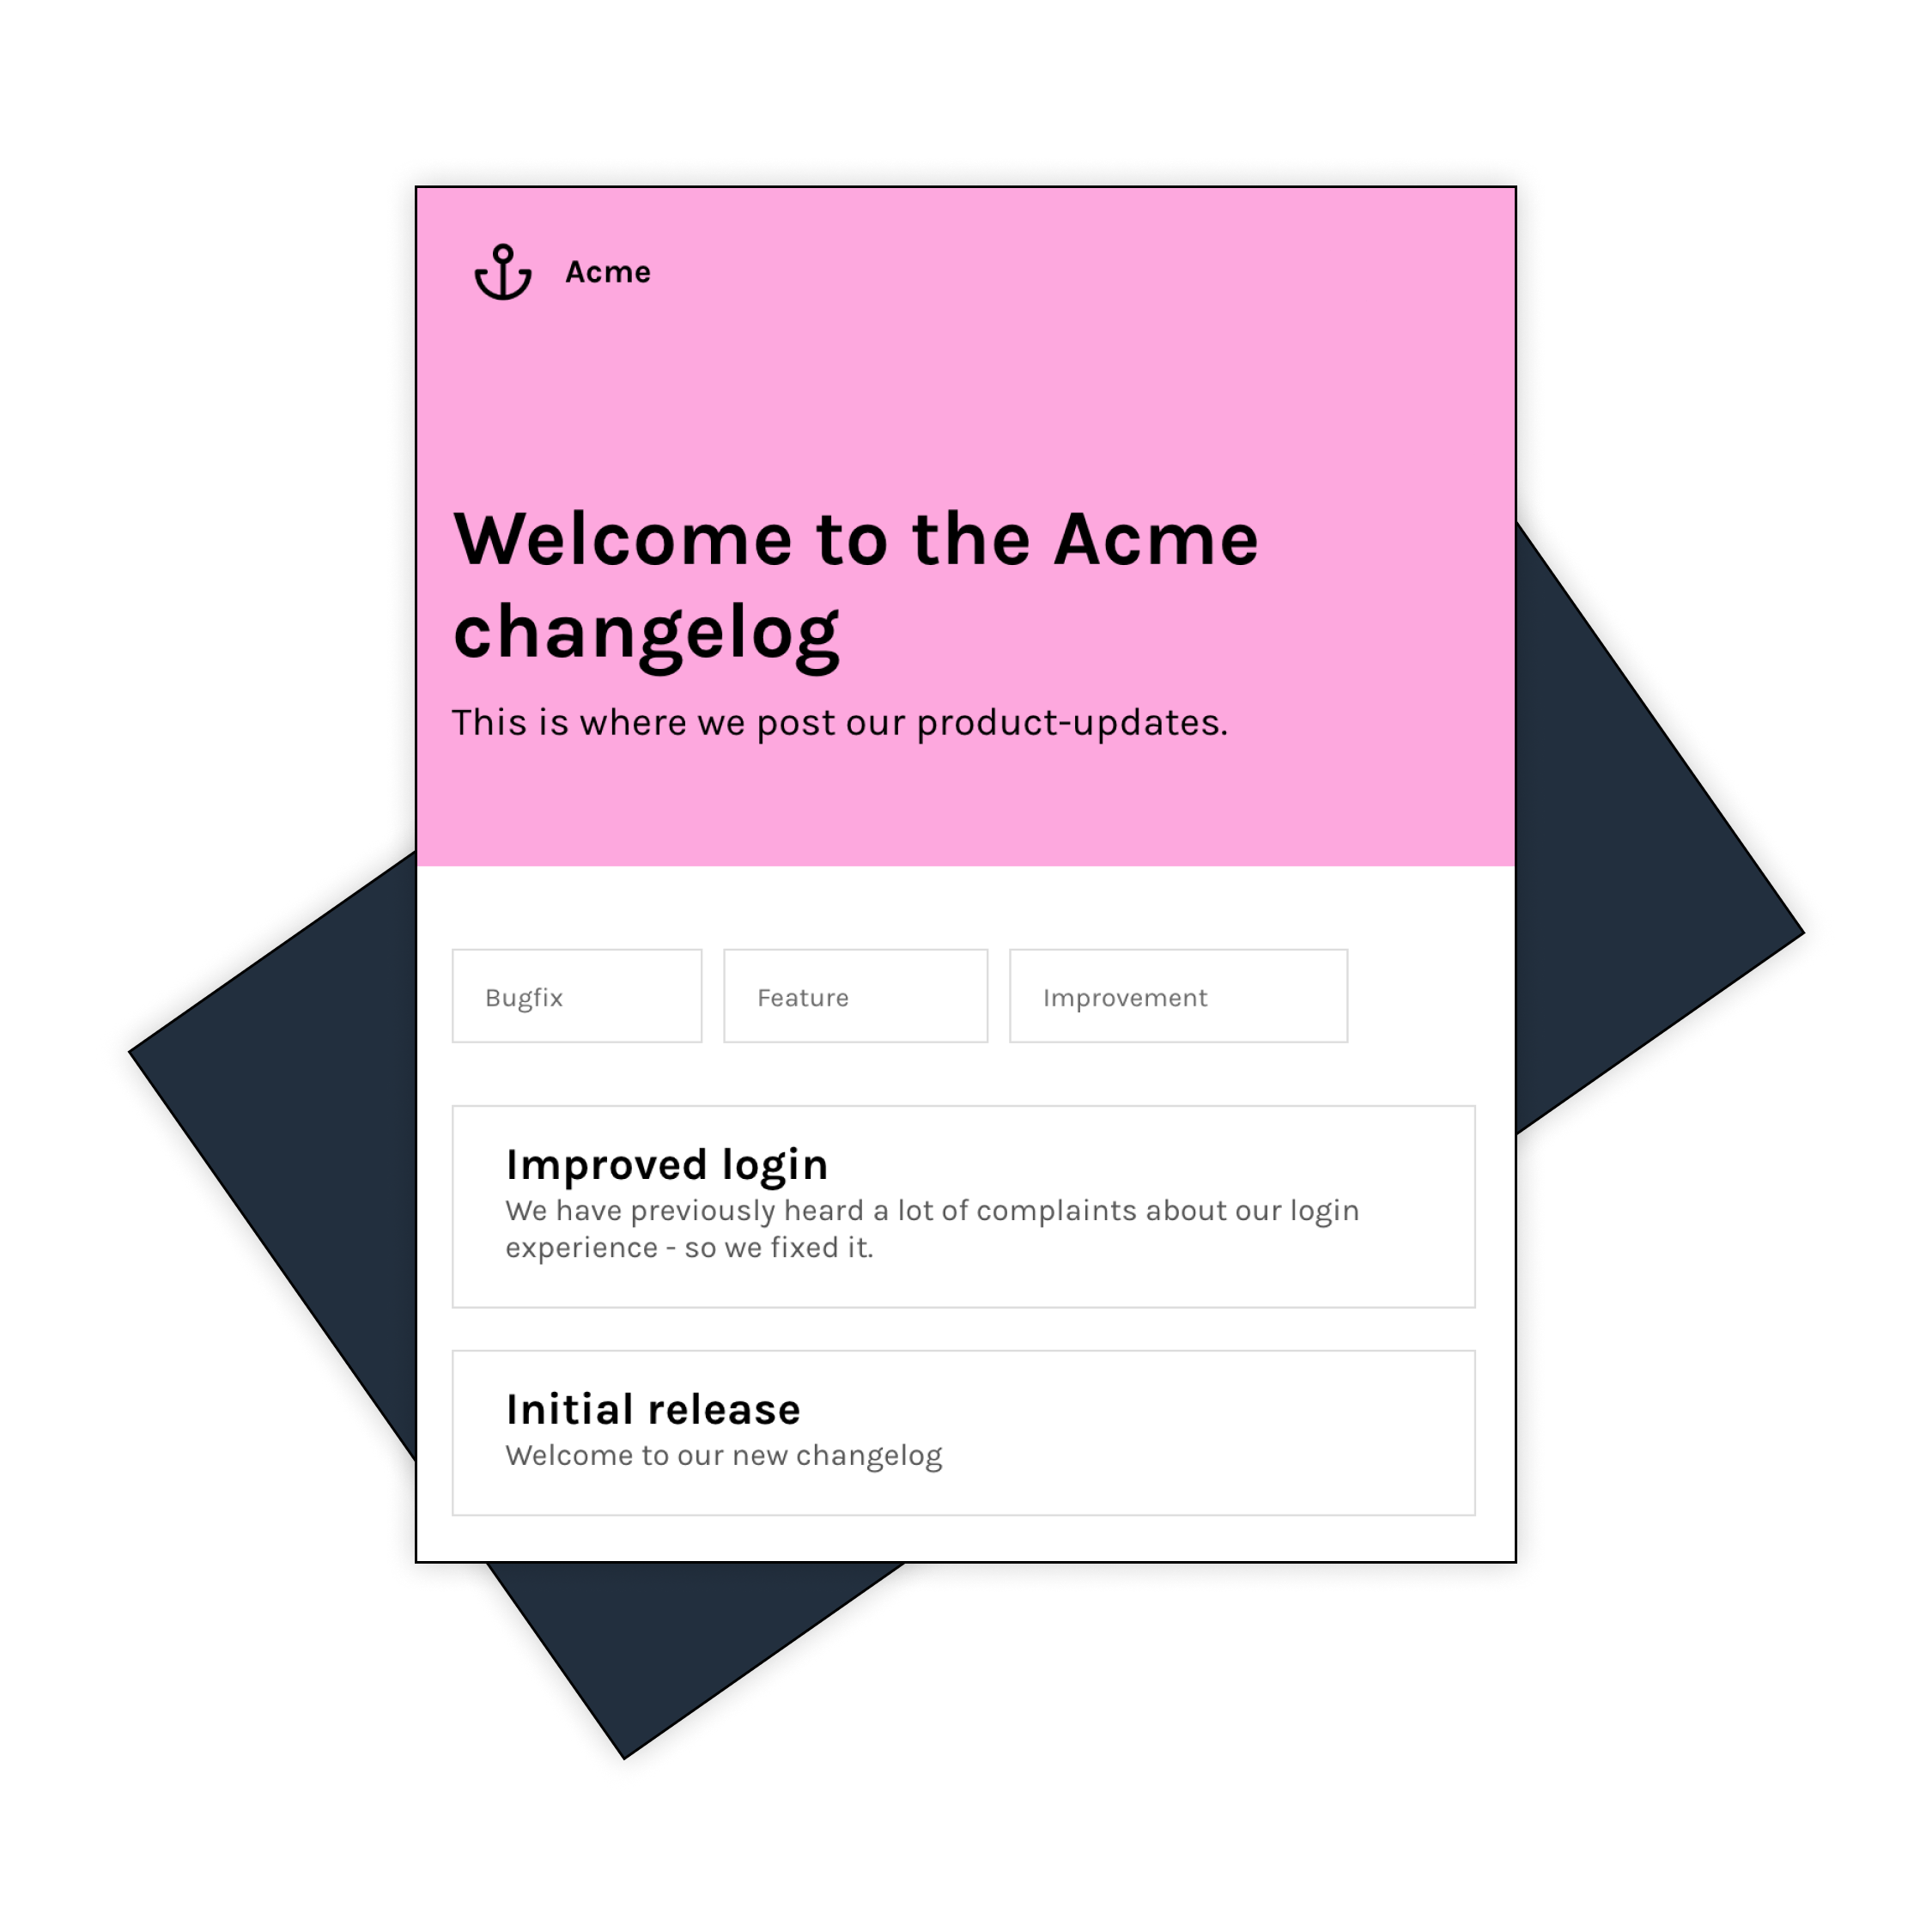 A screenshot of a changes landing page